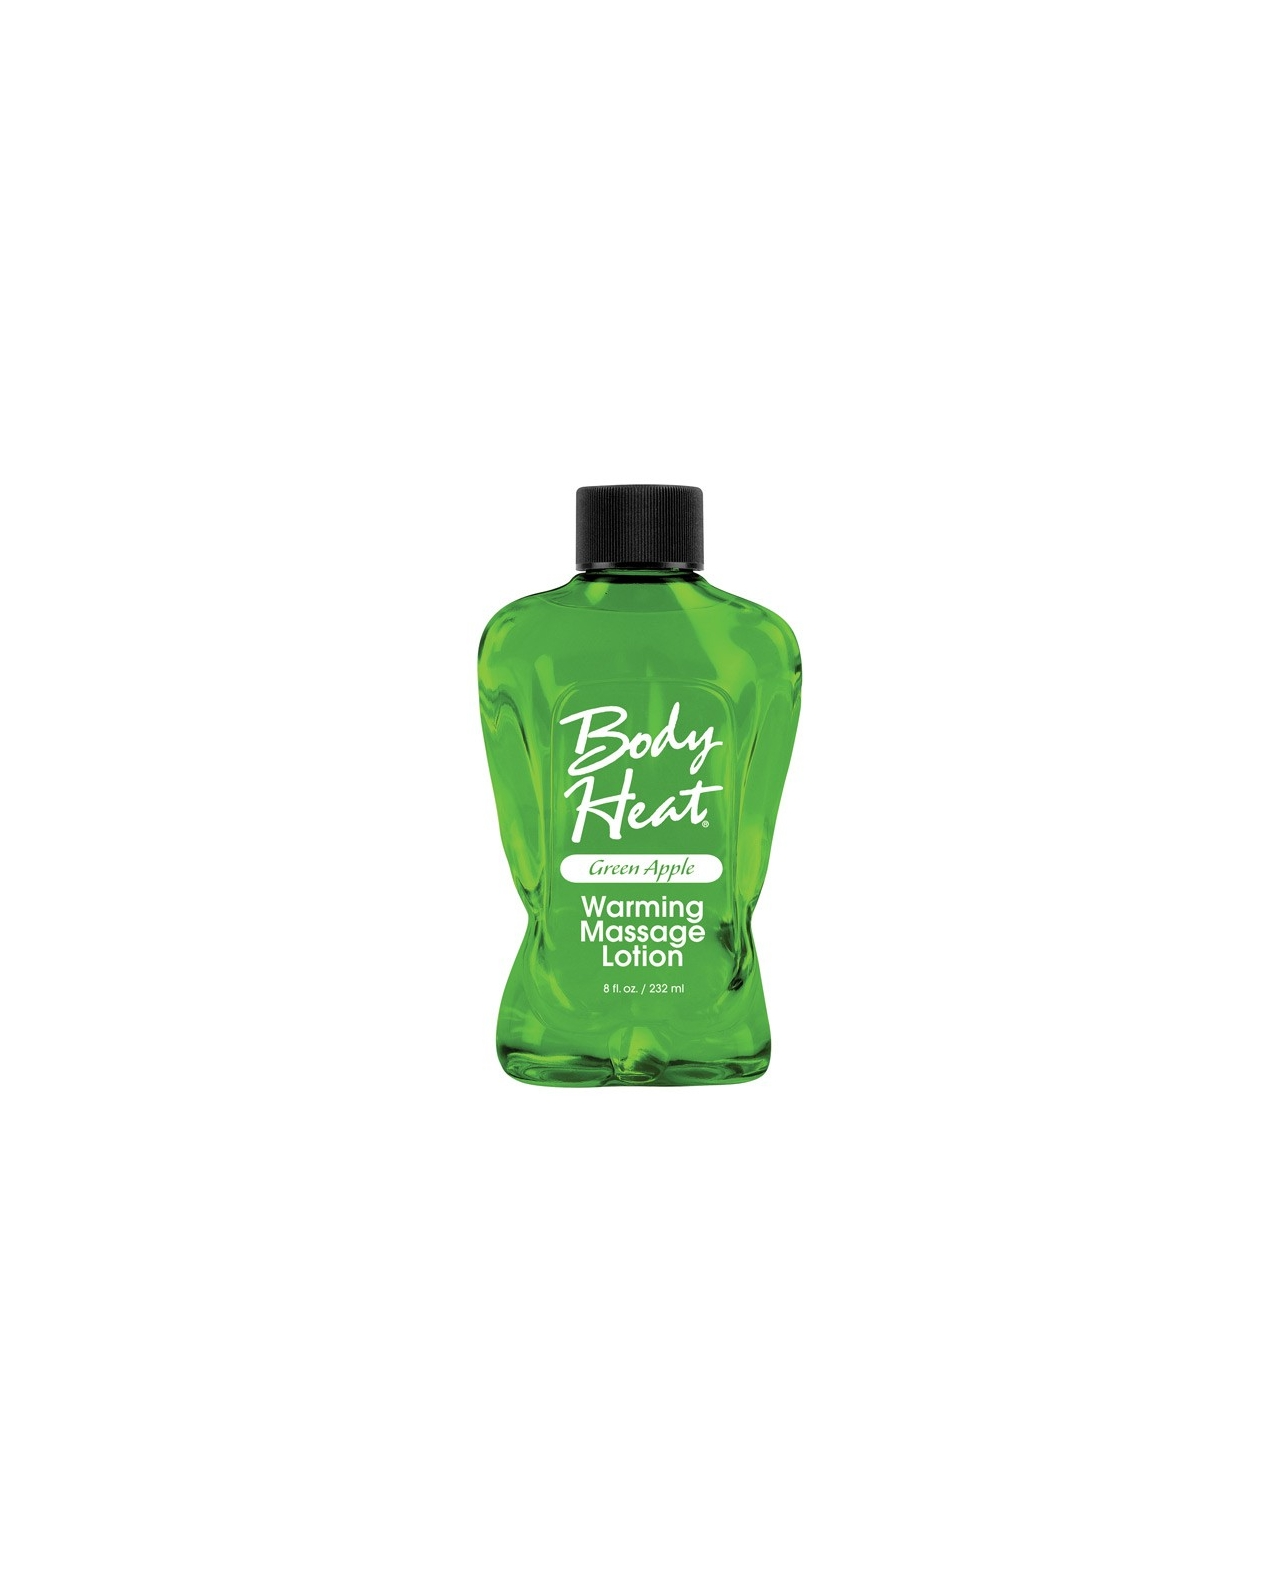 Body Heat Lotion - 8 oz Green Apple